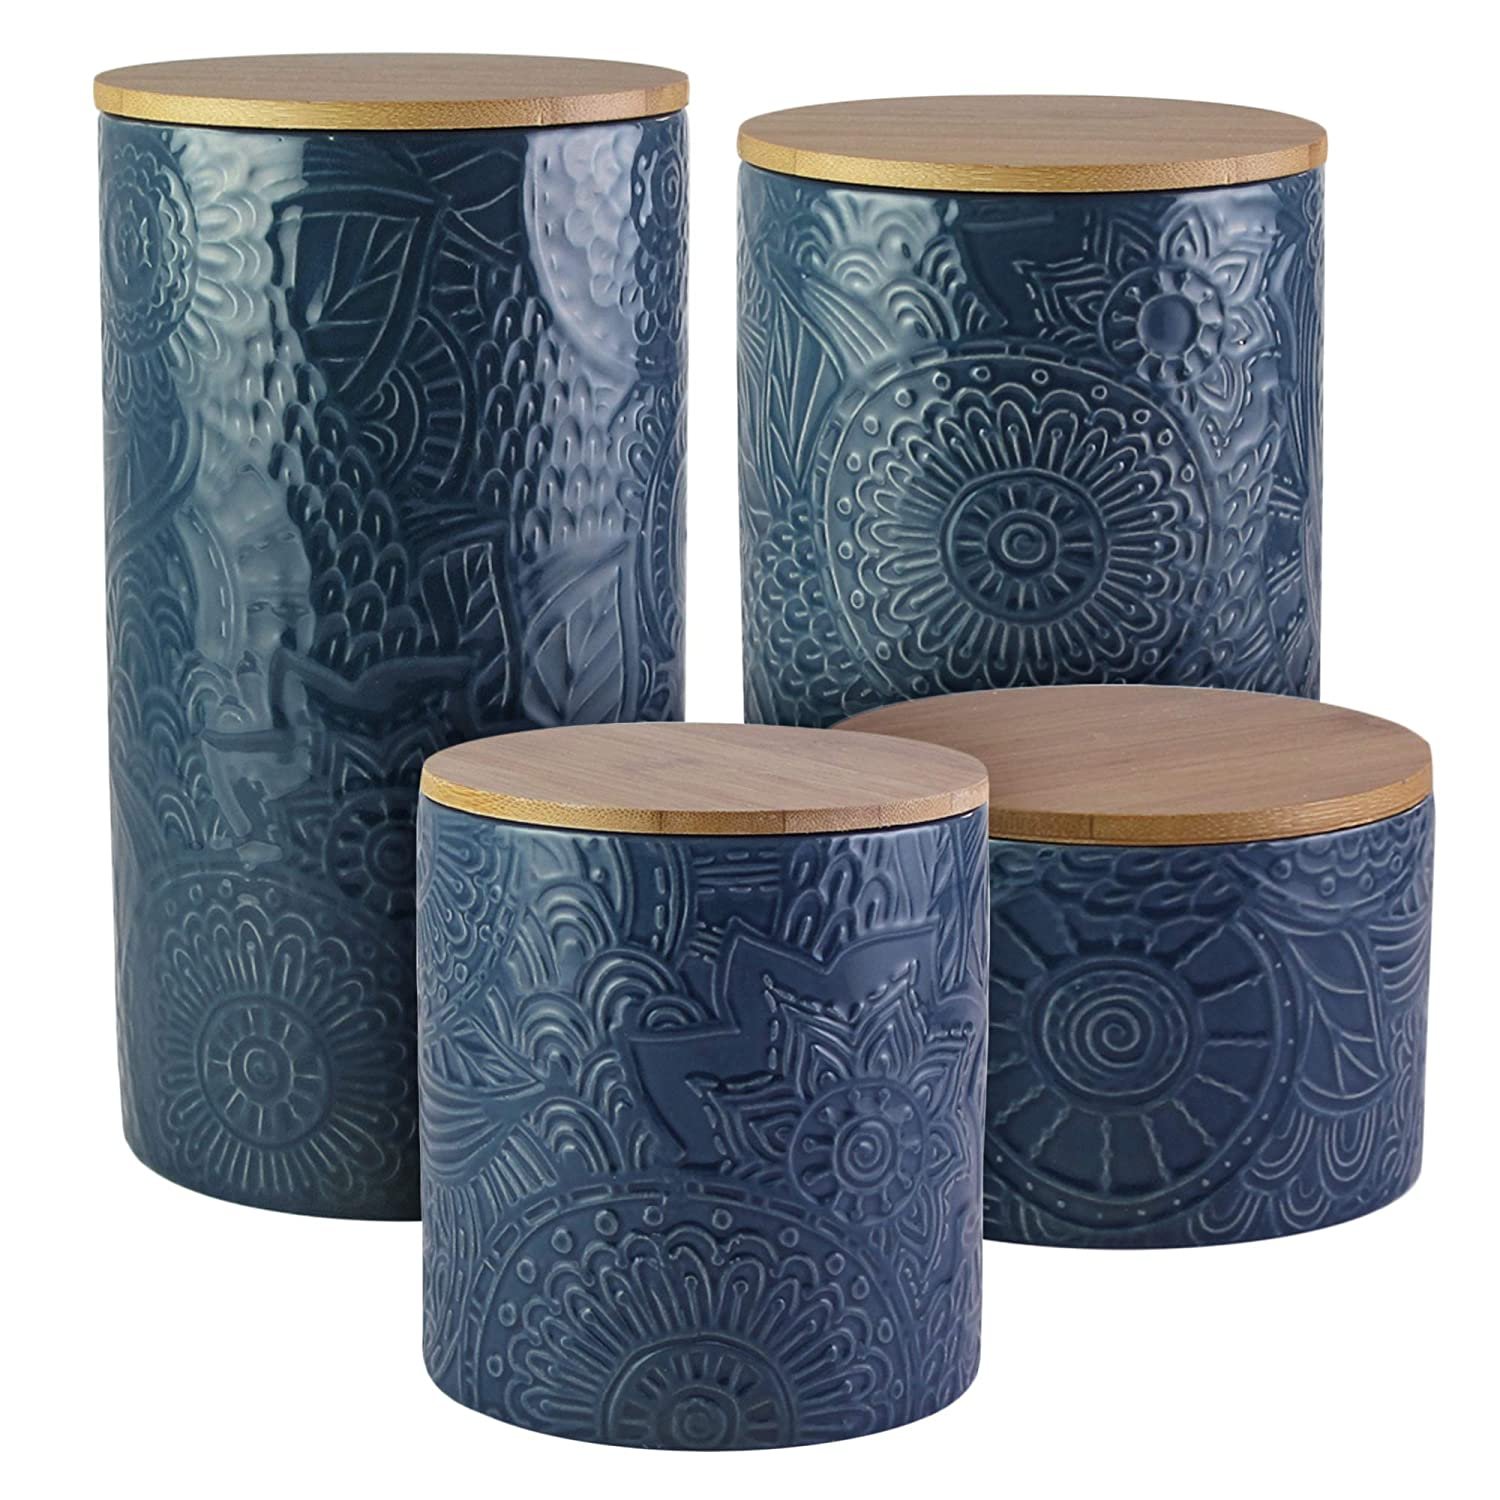 American Atelier Embossed 4 Piece Ceramic Canisters Set with Lids Blue